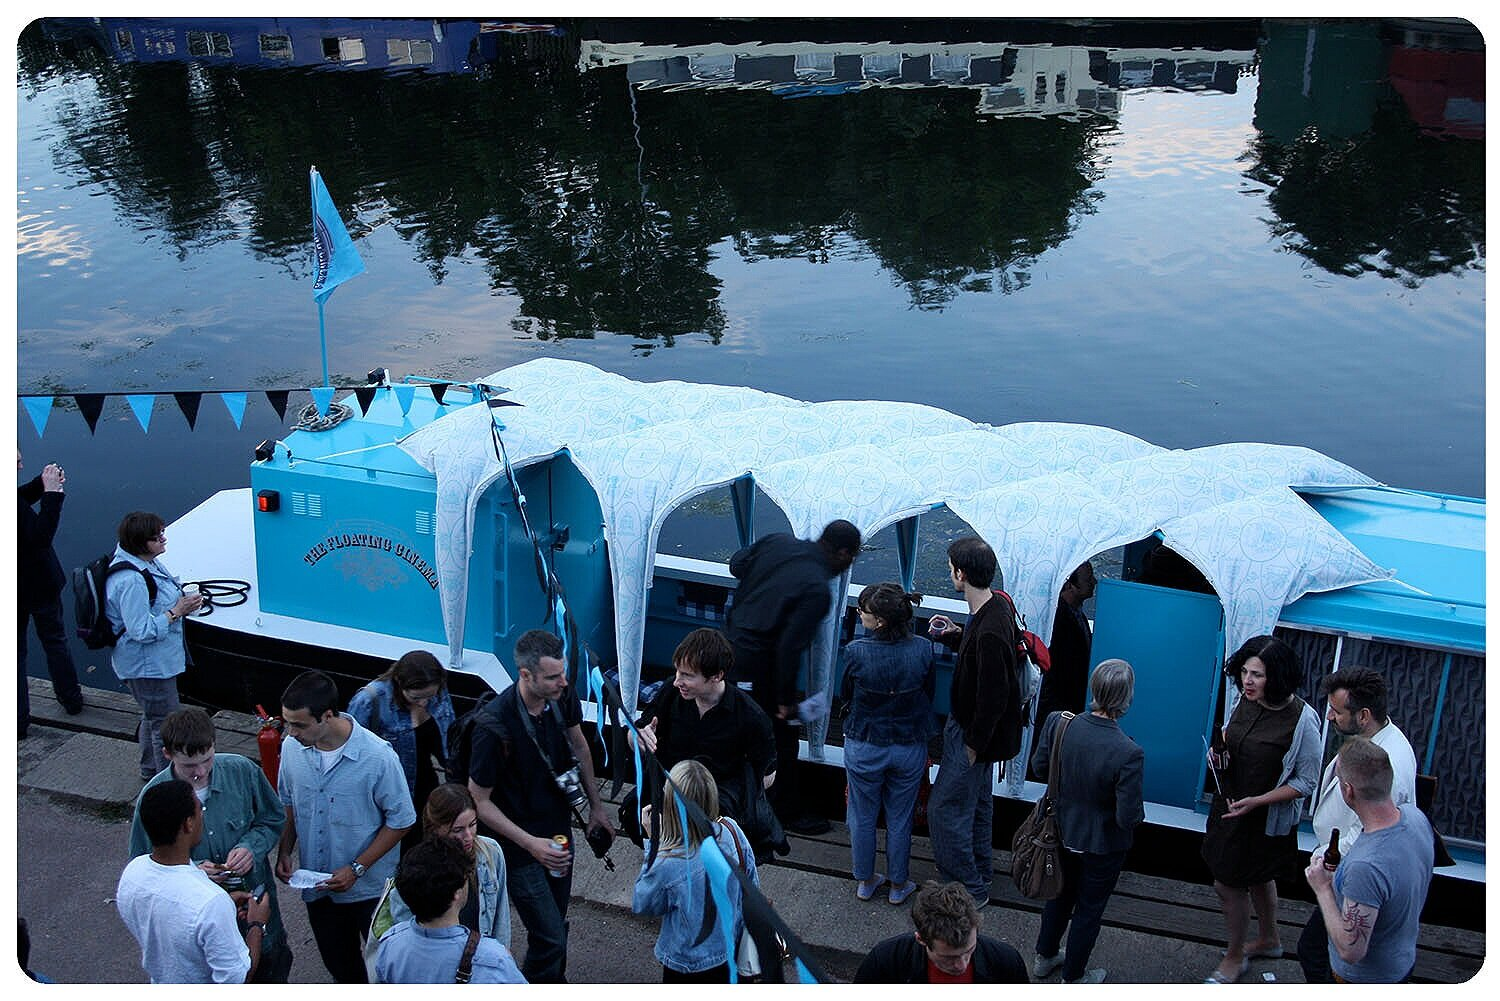 Floating Cinema Launch - 'Puff' pattern on Canal Boat